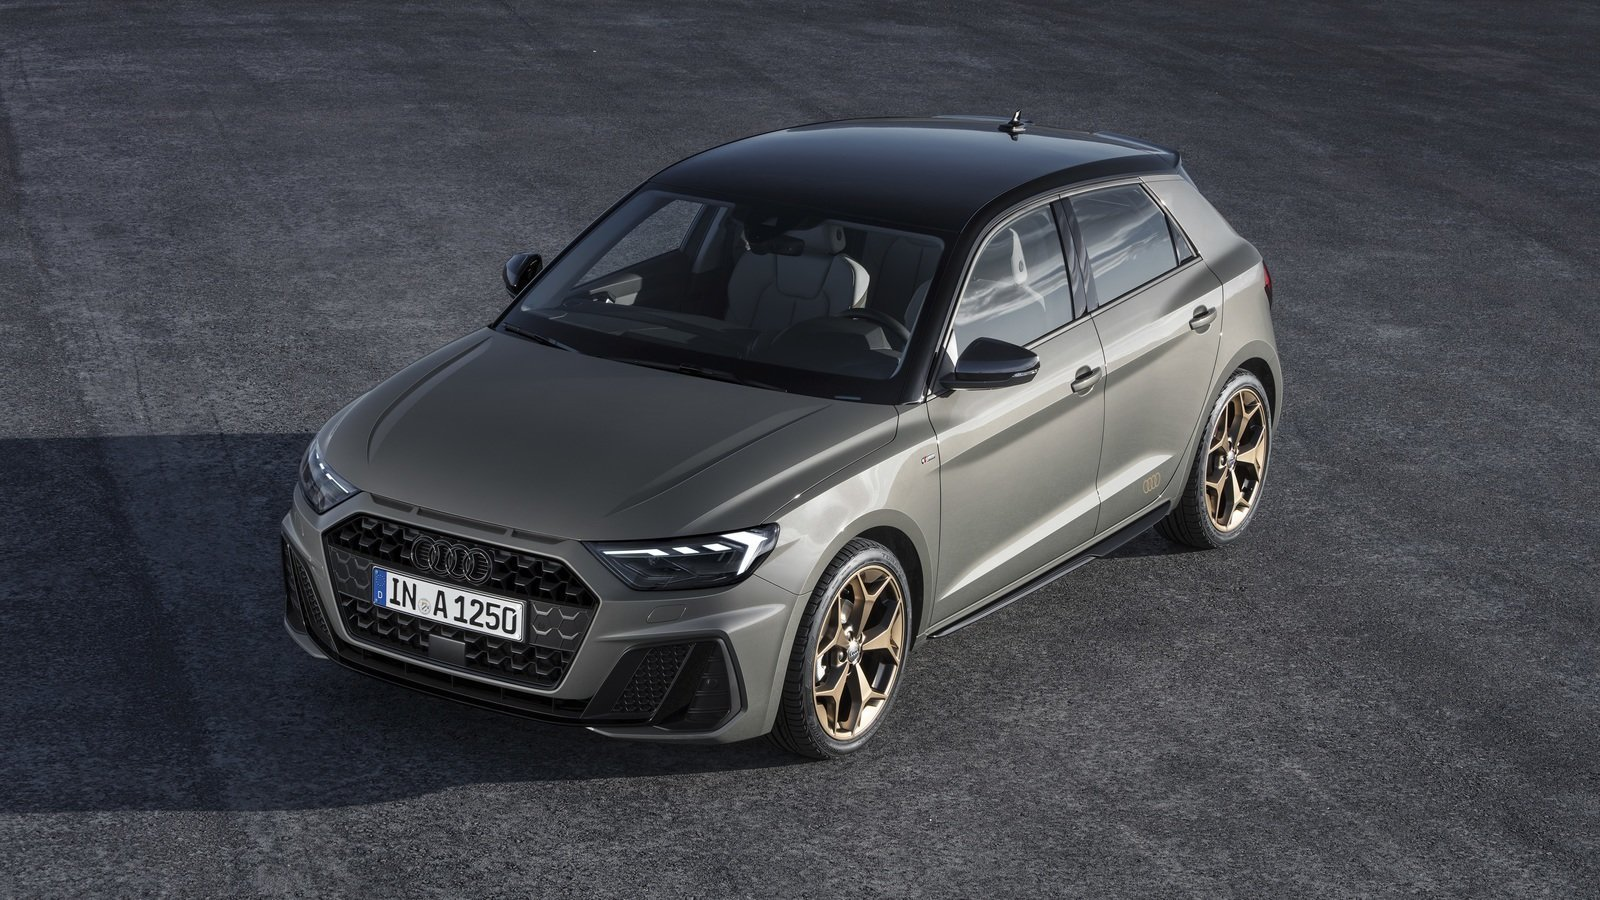 Latest Audi A1 Latest News Reviews Specifications Prices Free Download